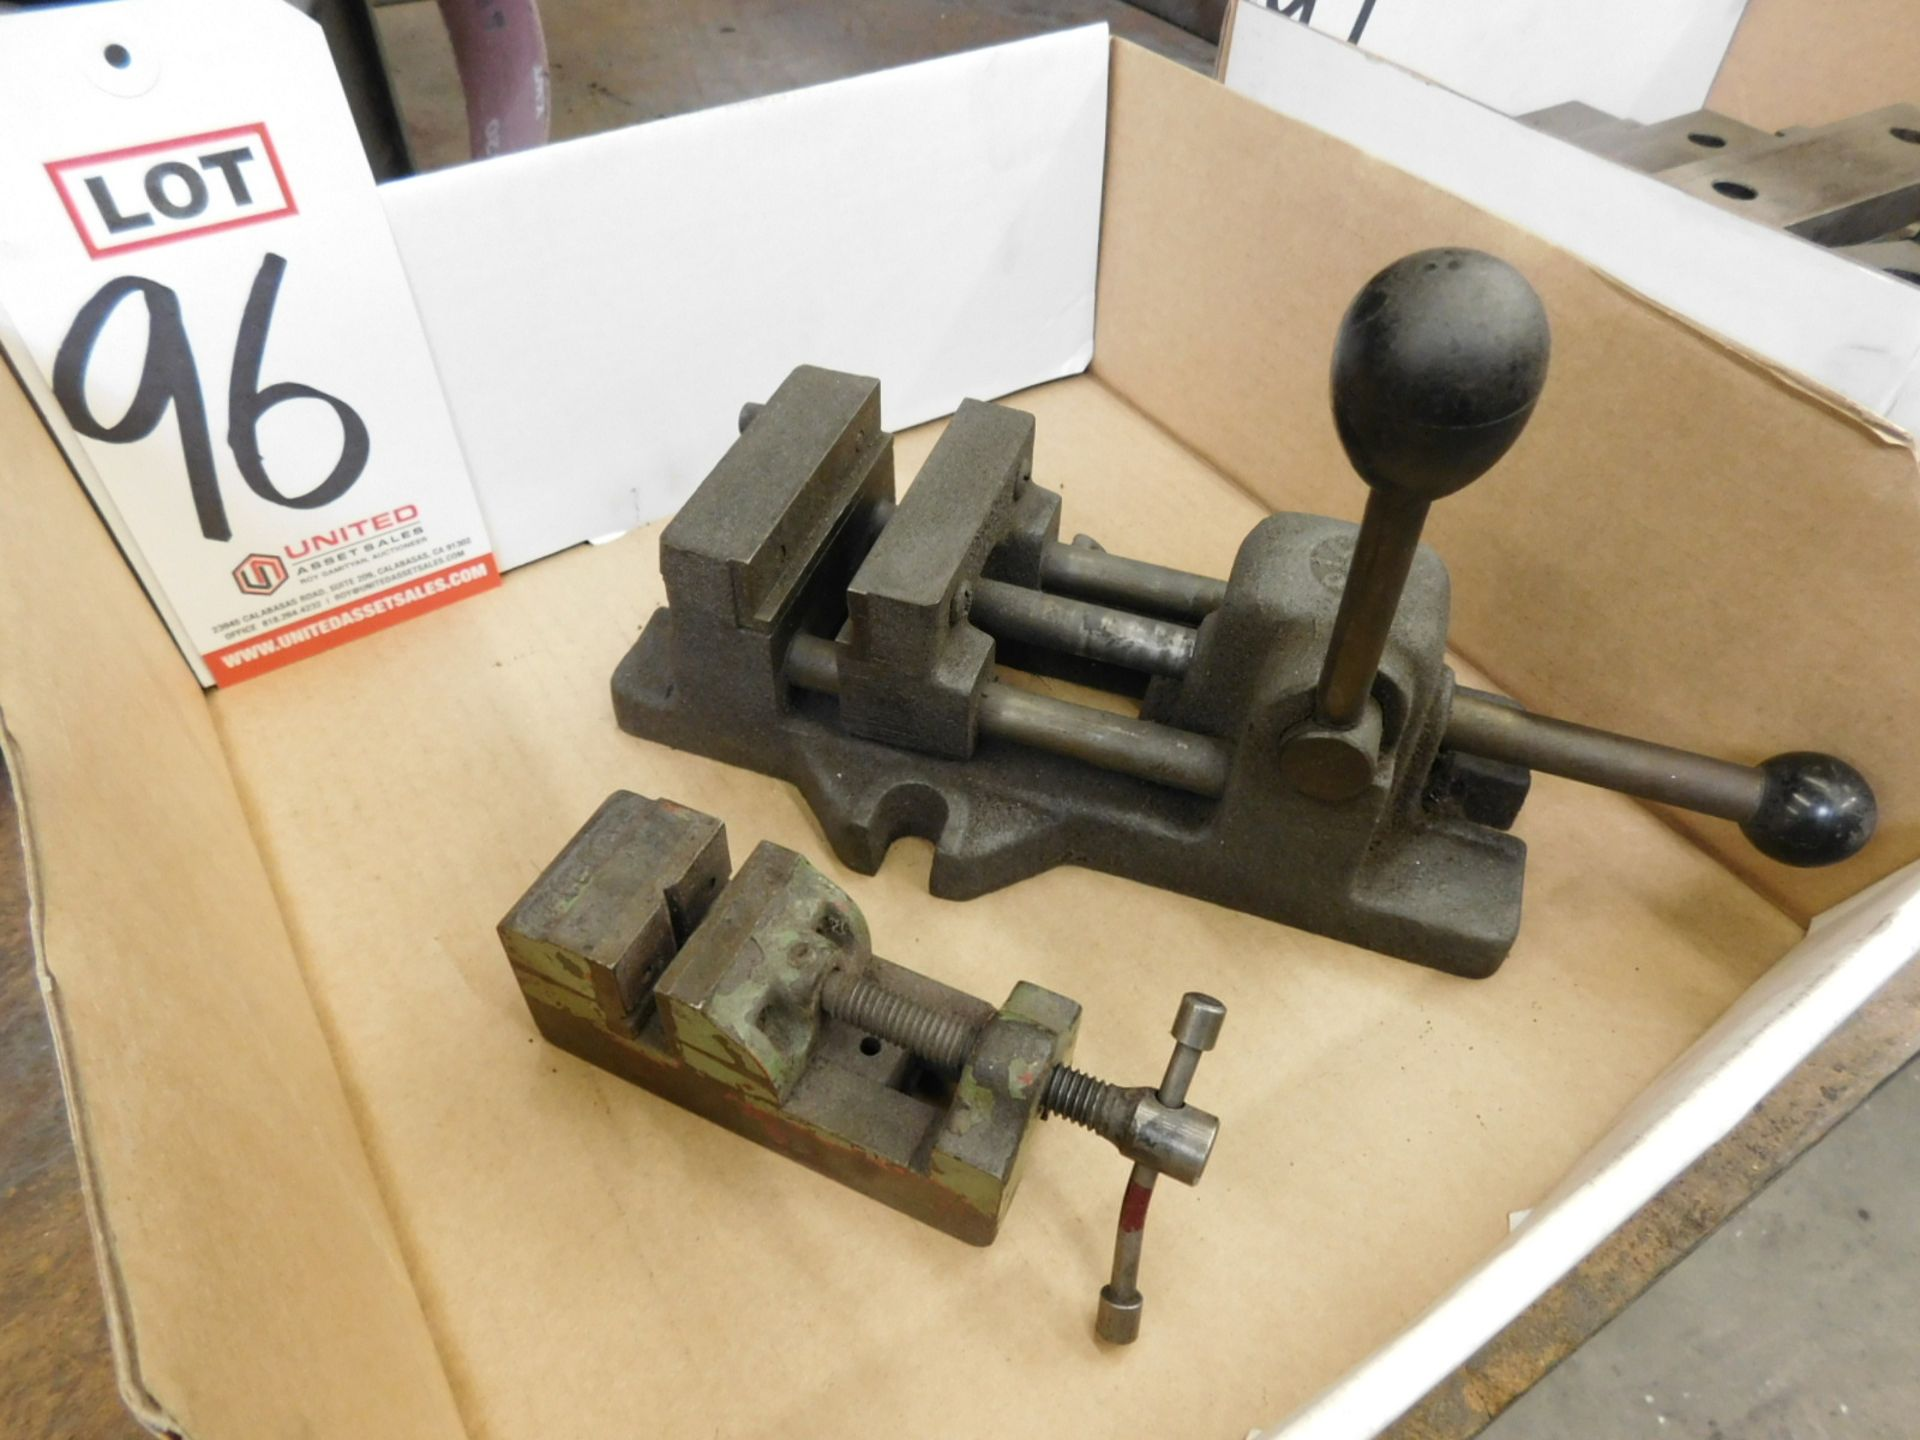 "LOT - (1) 3"" MACHINE VISE AND (1) 1-1/2"" PALMGREN VISE"